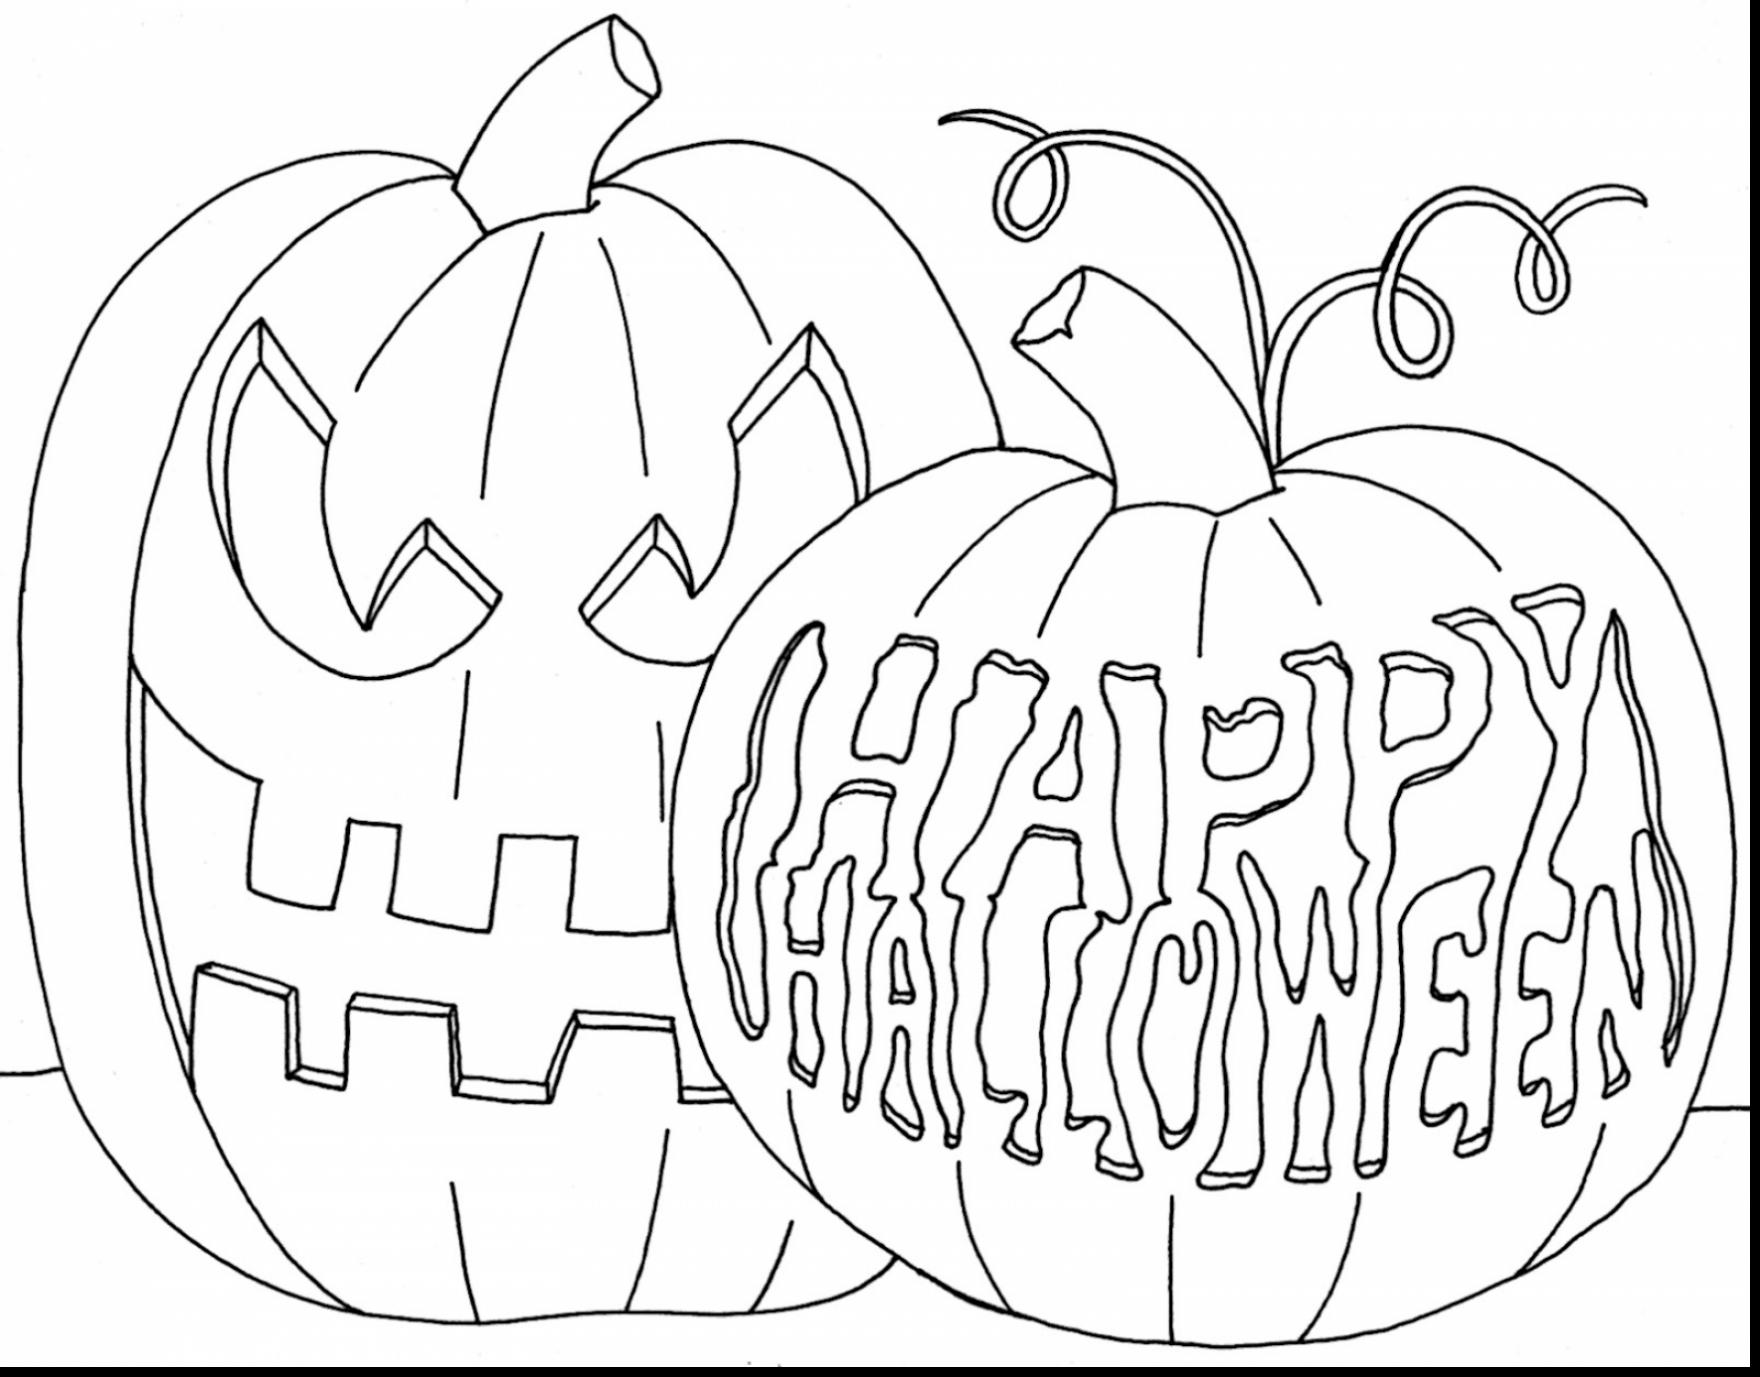 1760x1377 October Coloring Pages Outstanding Halloween Pumpkin Coloring